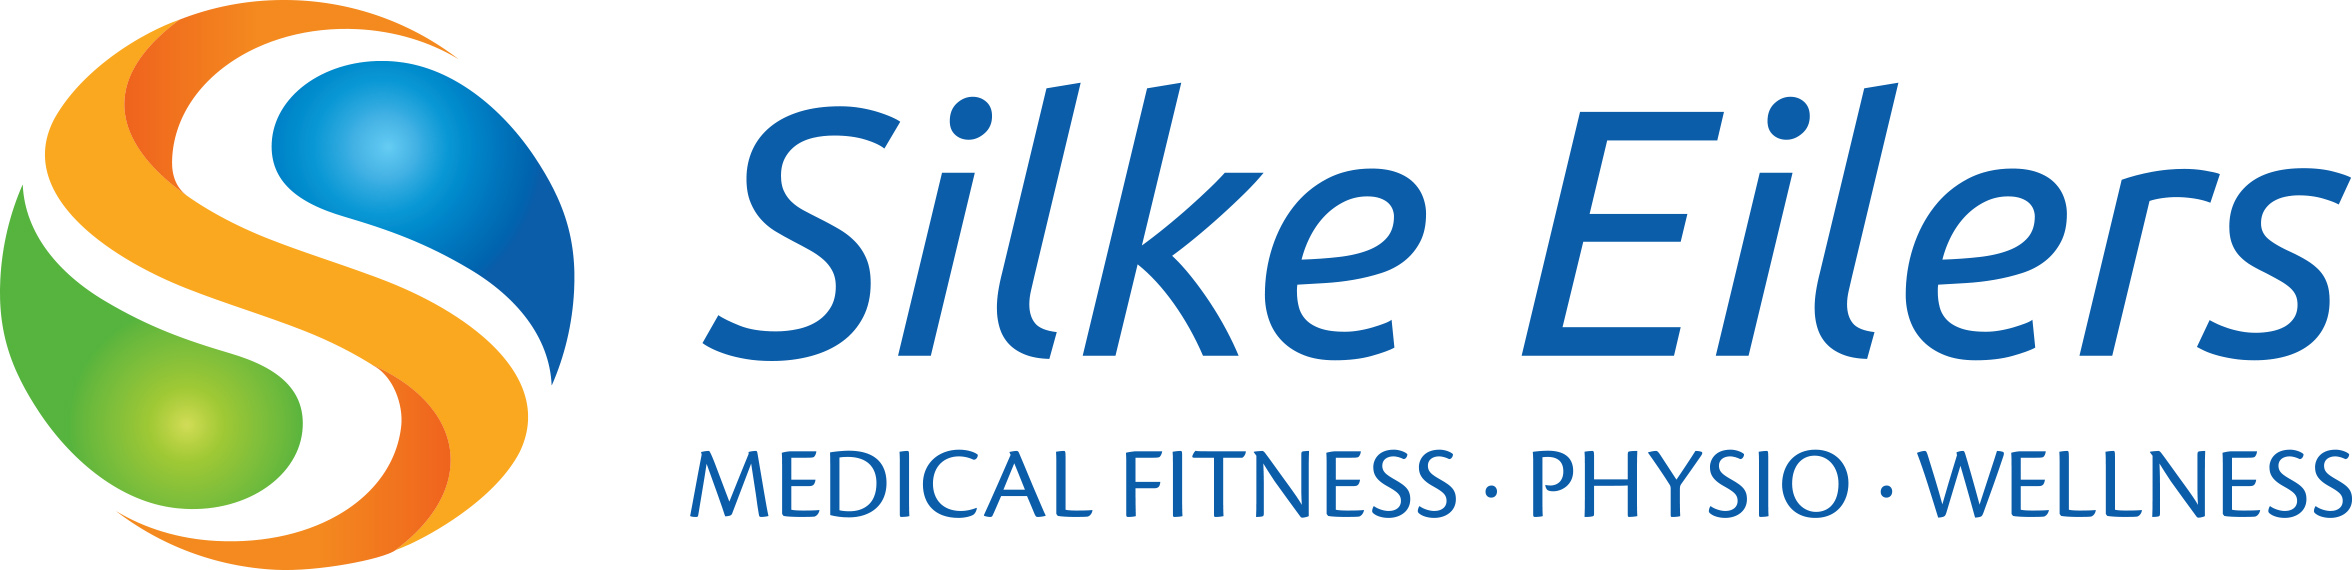 Silke Eilers – medical fitness • physiotherapy • wellness in Berlin-Charlottenburg